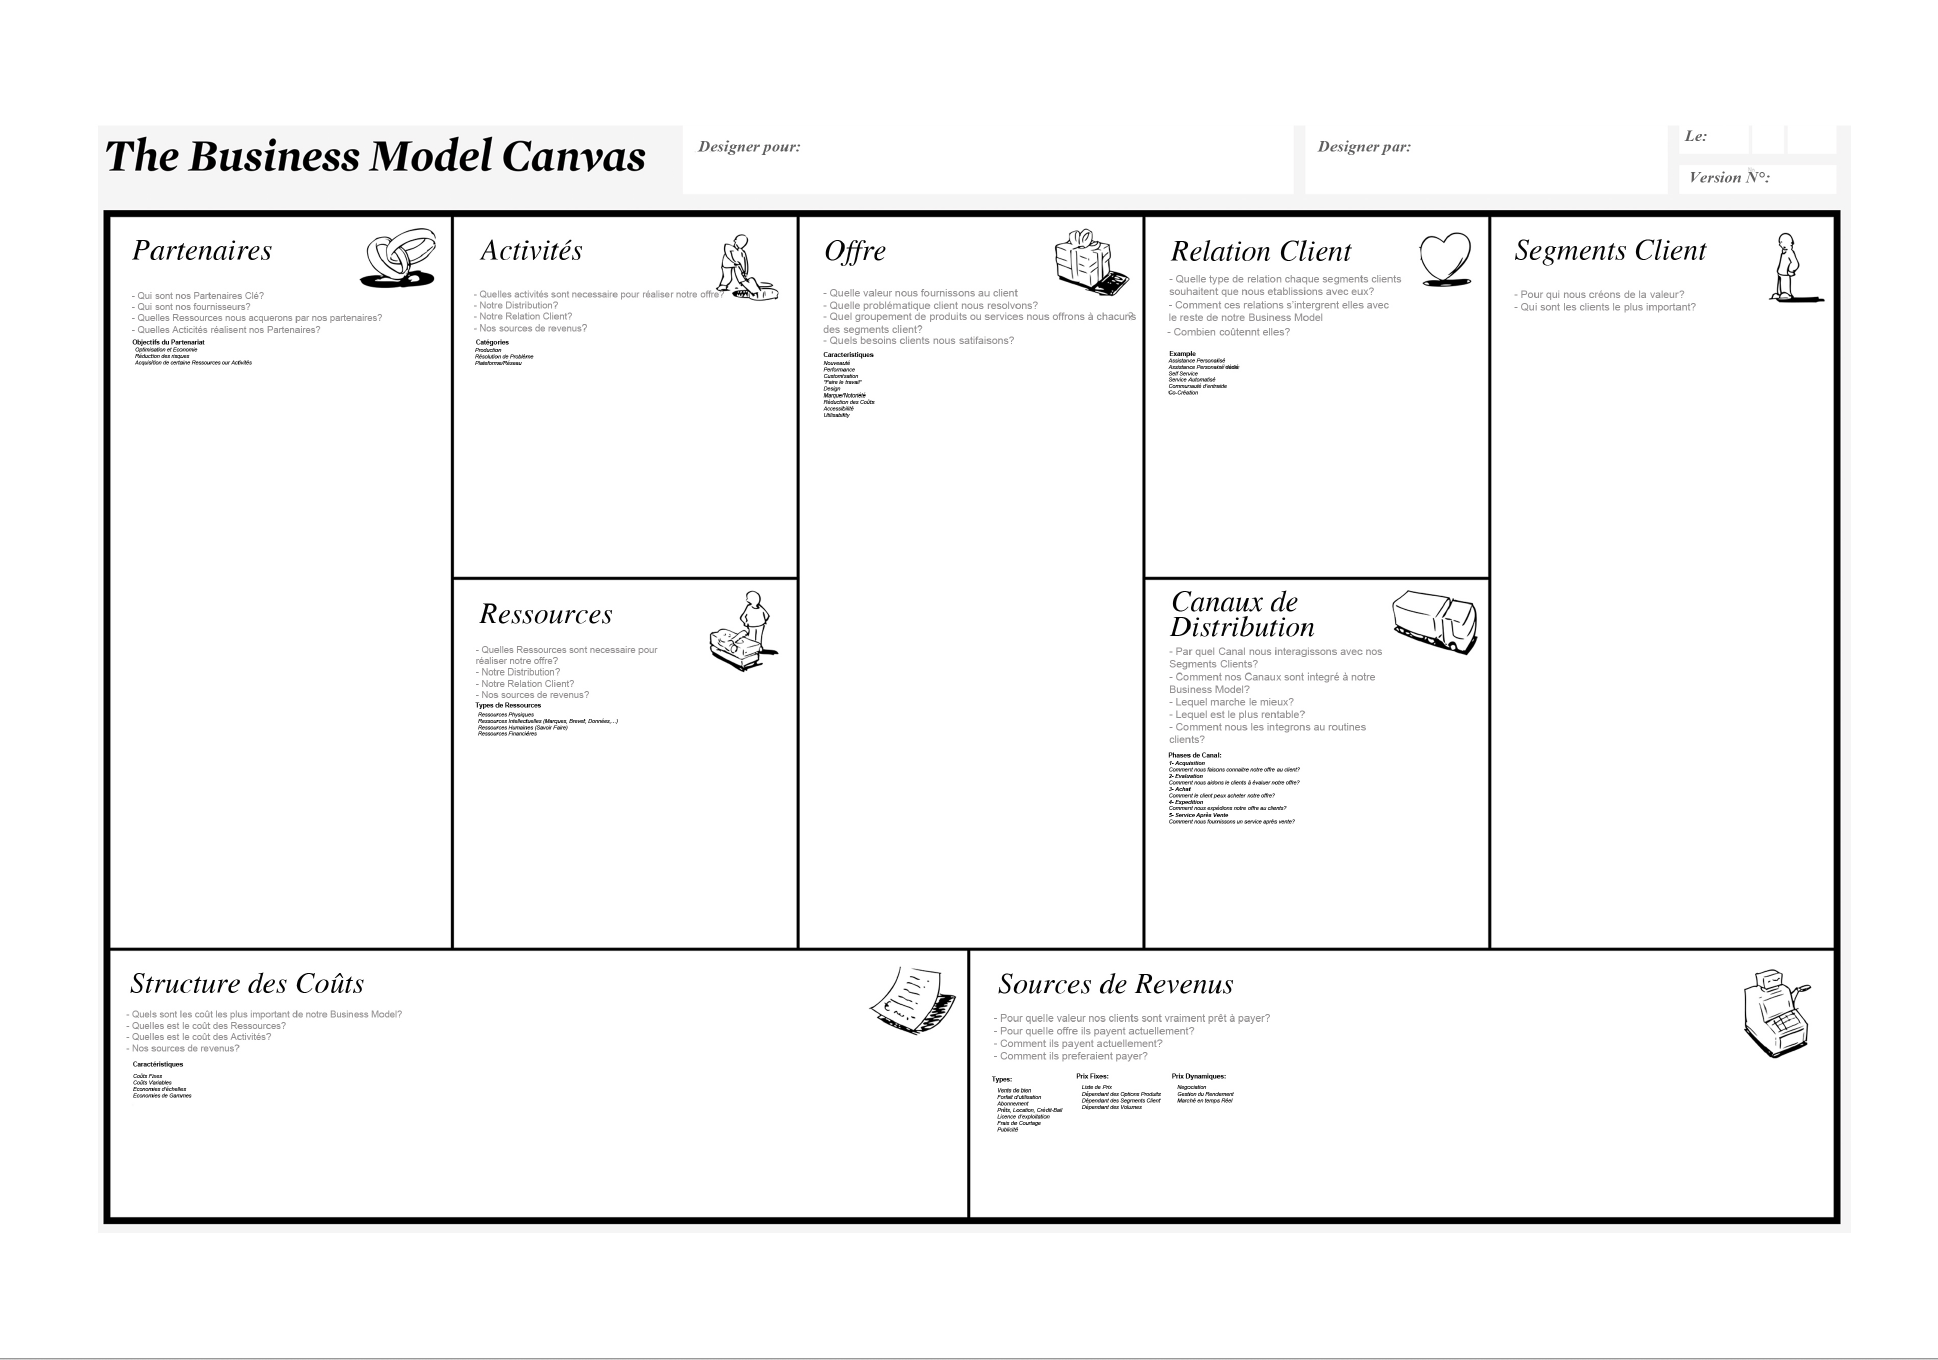 businessmodelcanvas.png